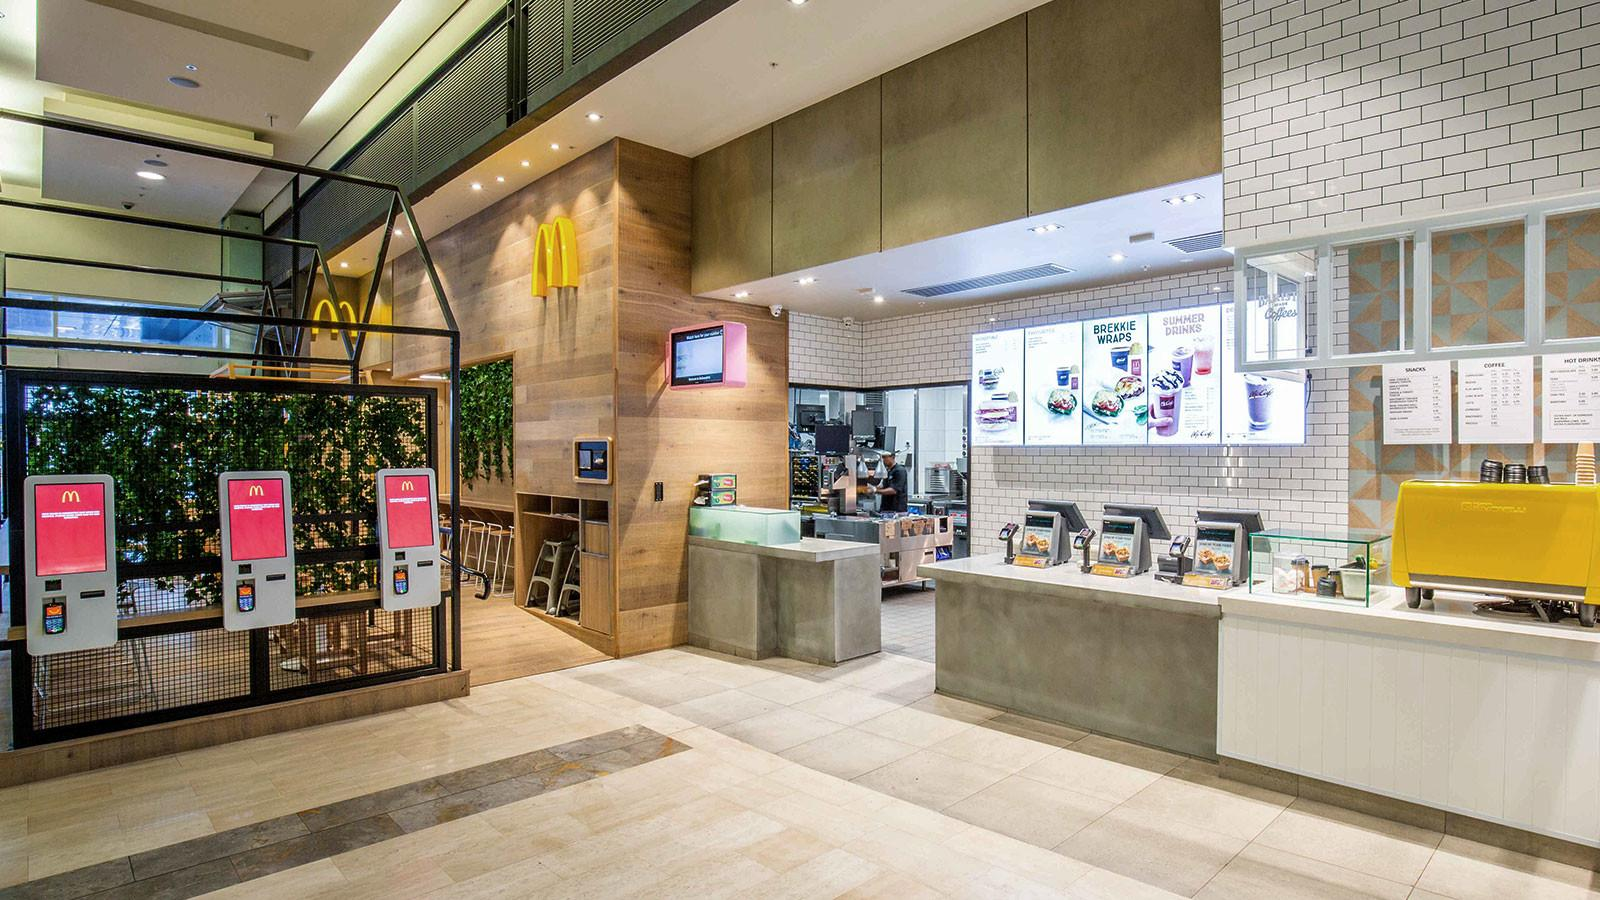 Mcdonald Bondi Junction Sydney Juicy Design